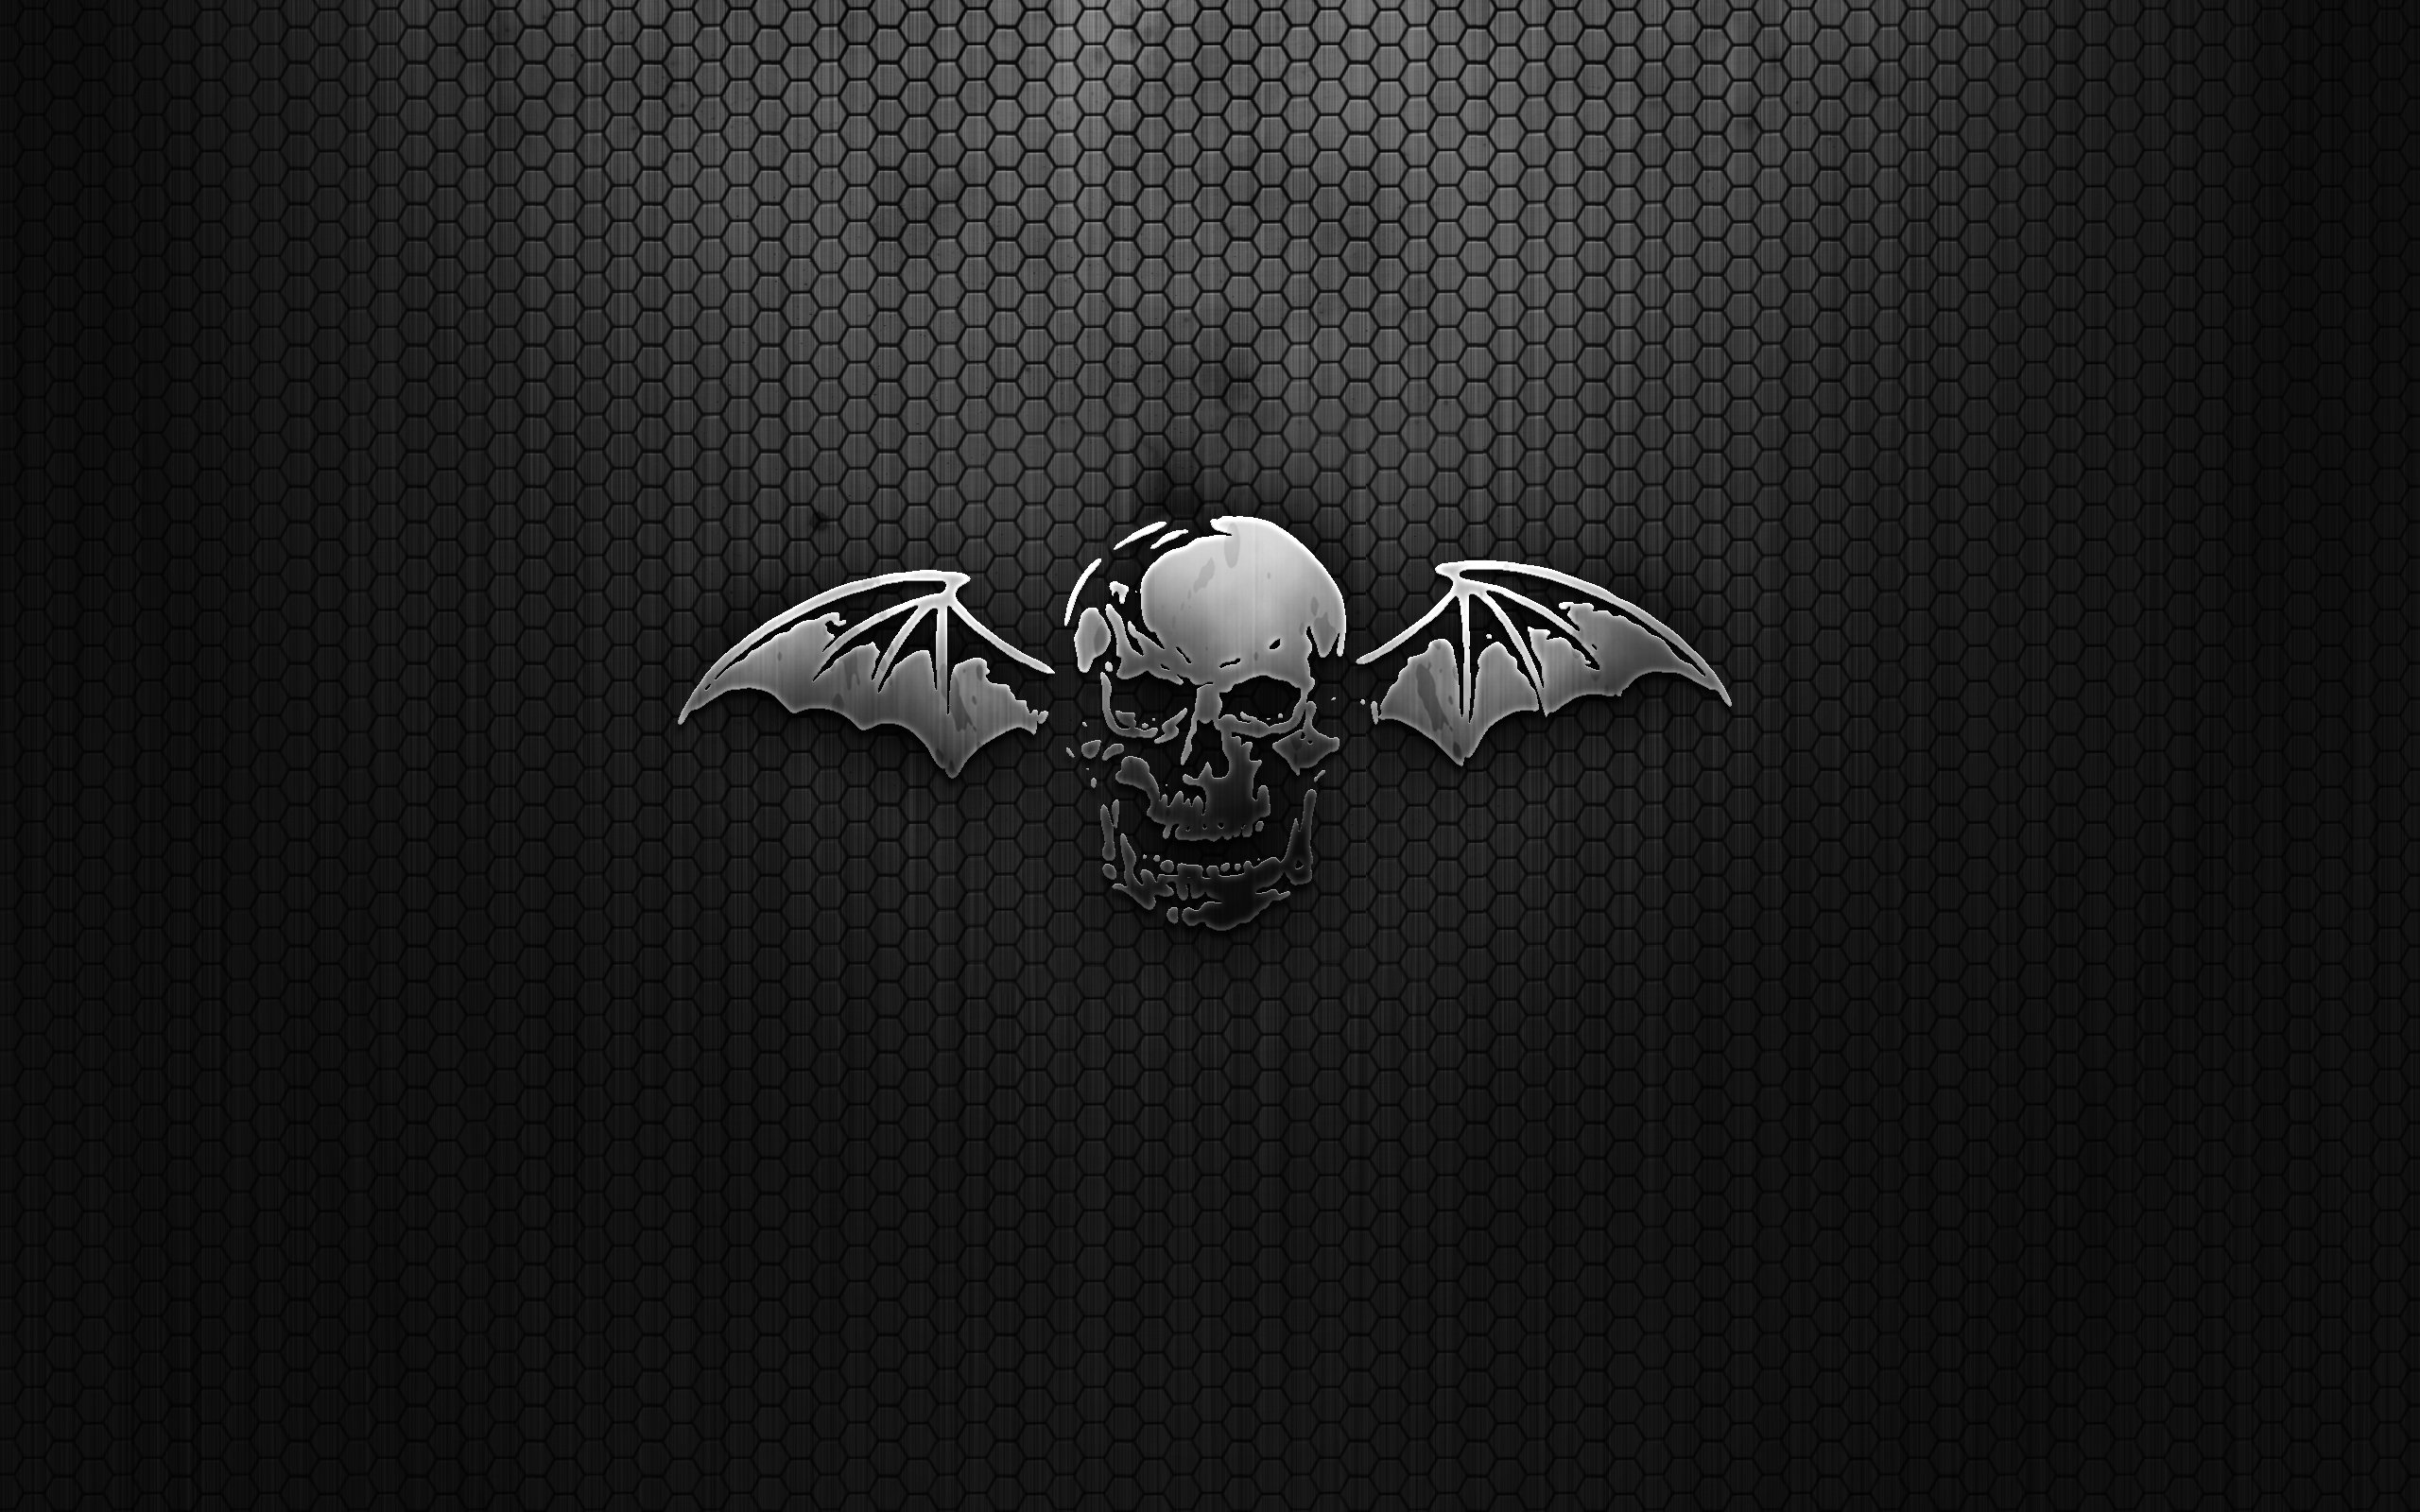 Home Browse All Avenged Sevenfold 2560x1600